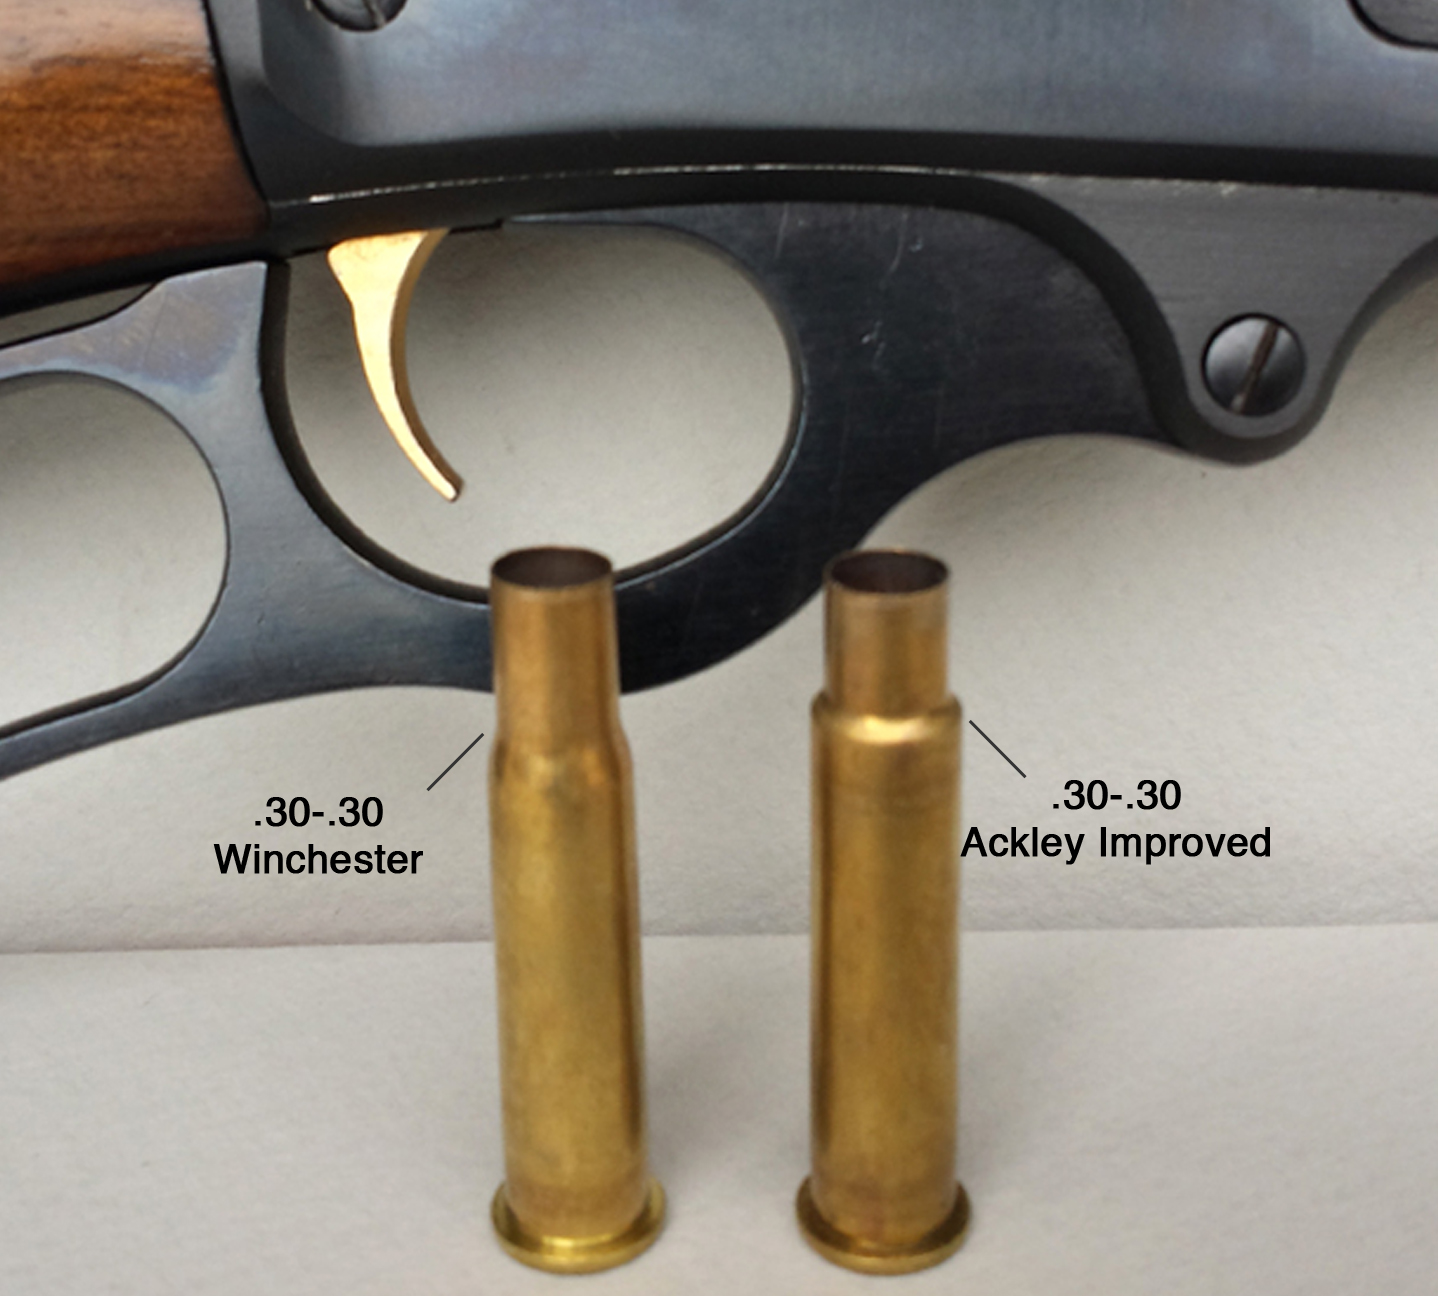 Reaming a Marlin 336 to 30-30 Ackley Improved for Handloads